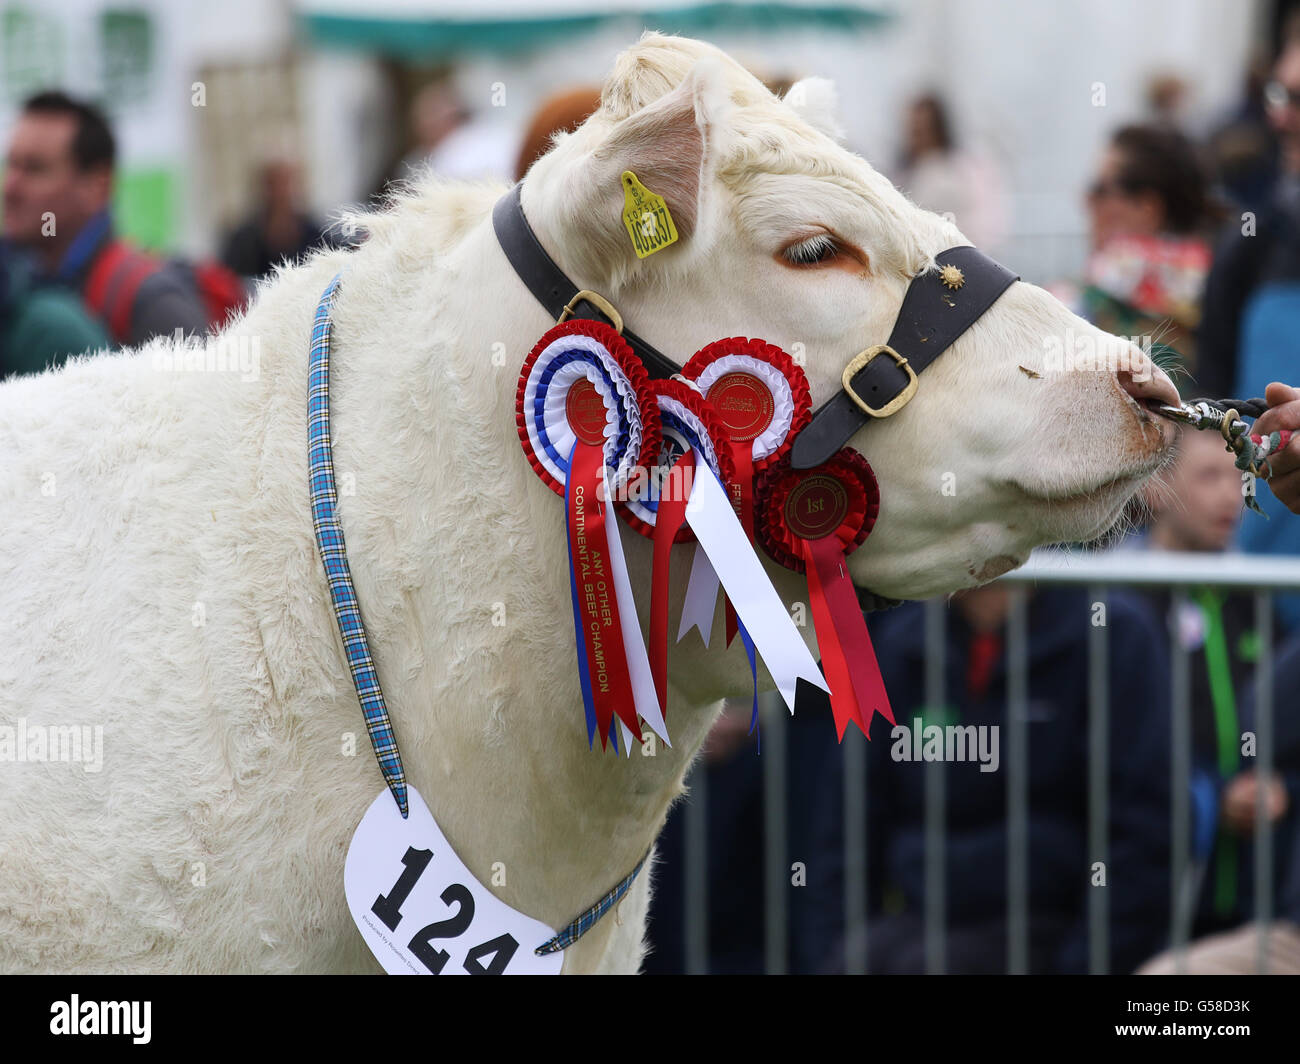 Bywell, England - May 30, 2016: Champion cow at the Northumberland County Show at Bywell in Northumberland, England. - Stock Image